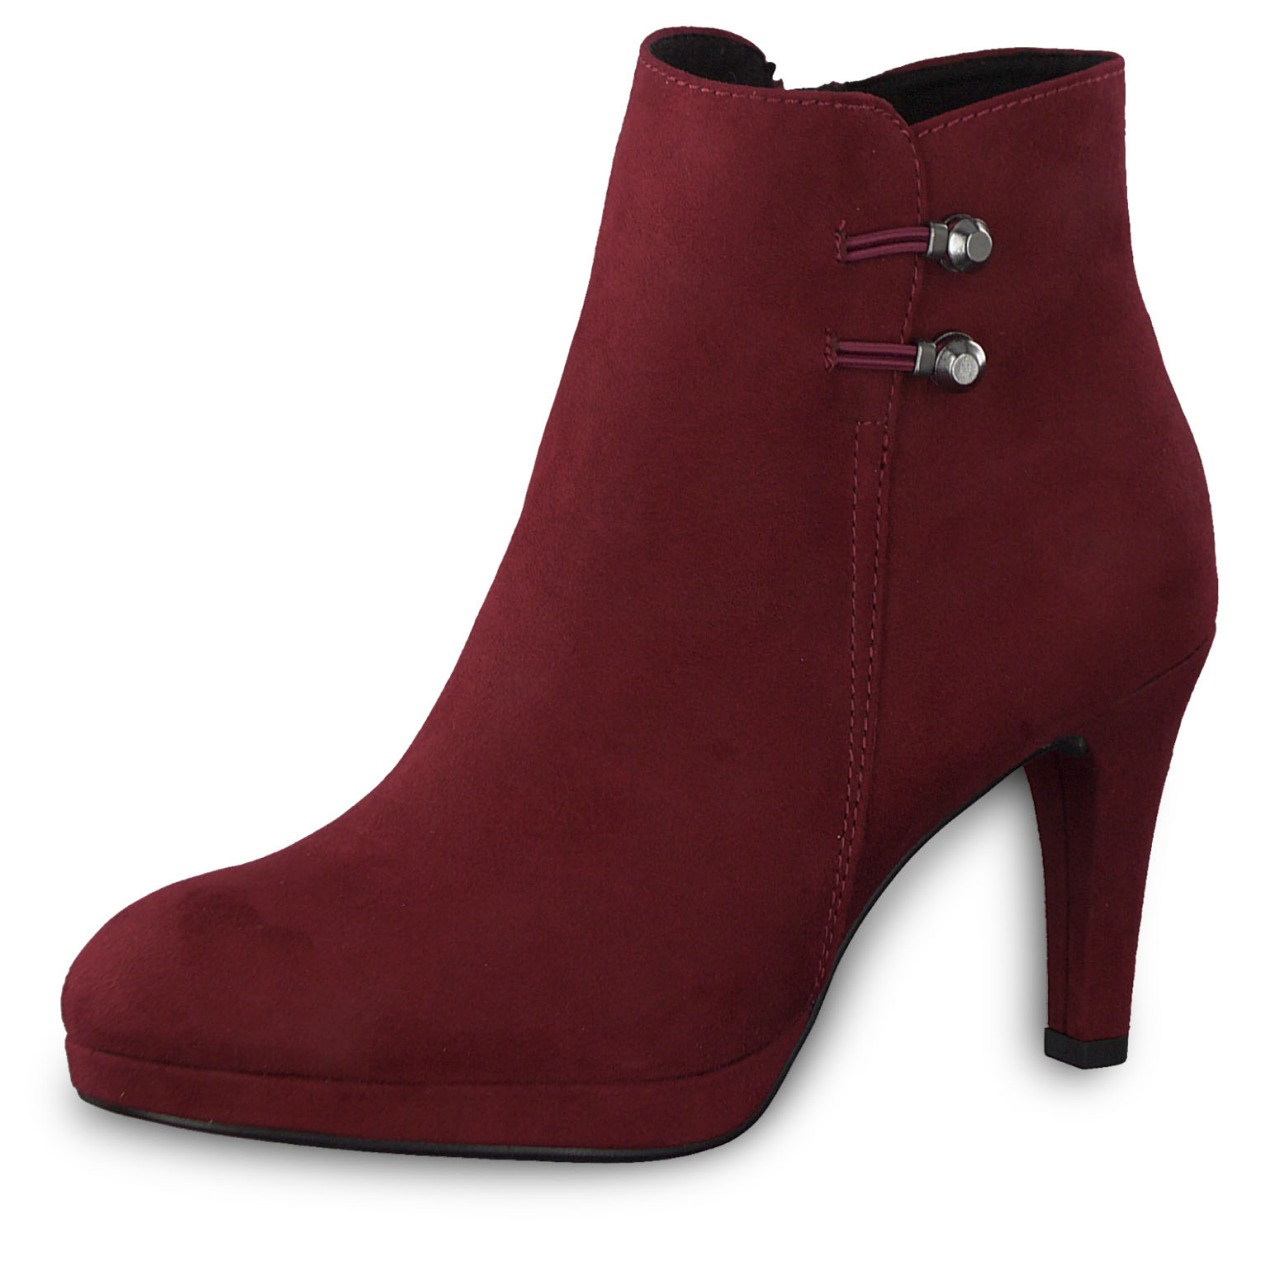 Details about Marco Tozzi Ladies Ankle Boots Ankle Boots High Heel 2 25342 33 Chianti Red